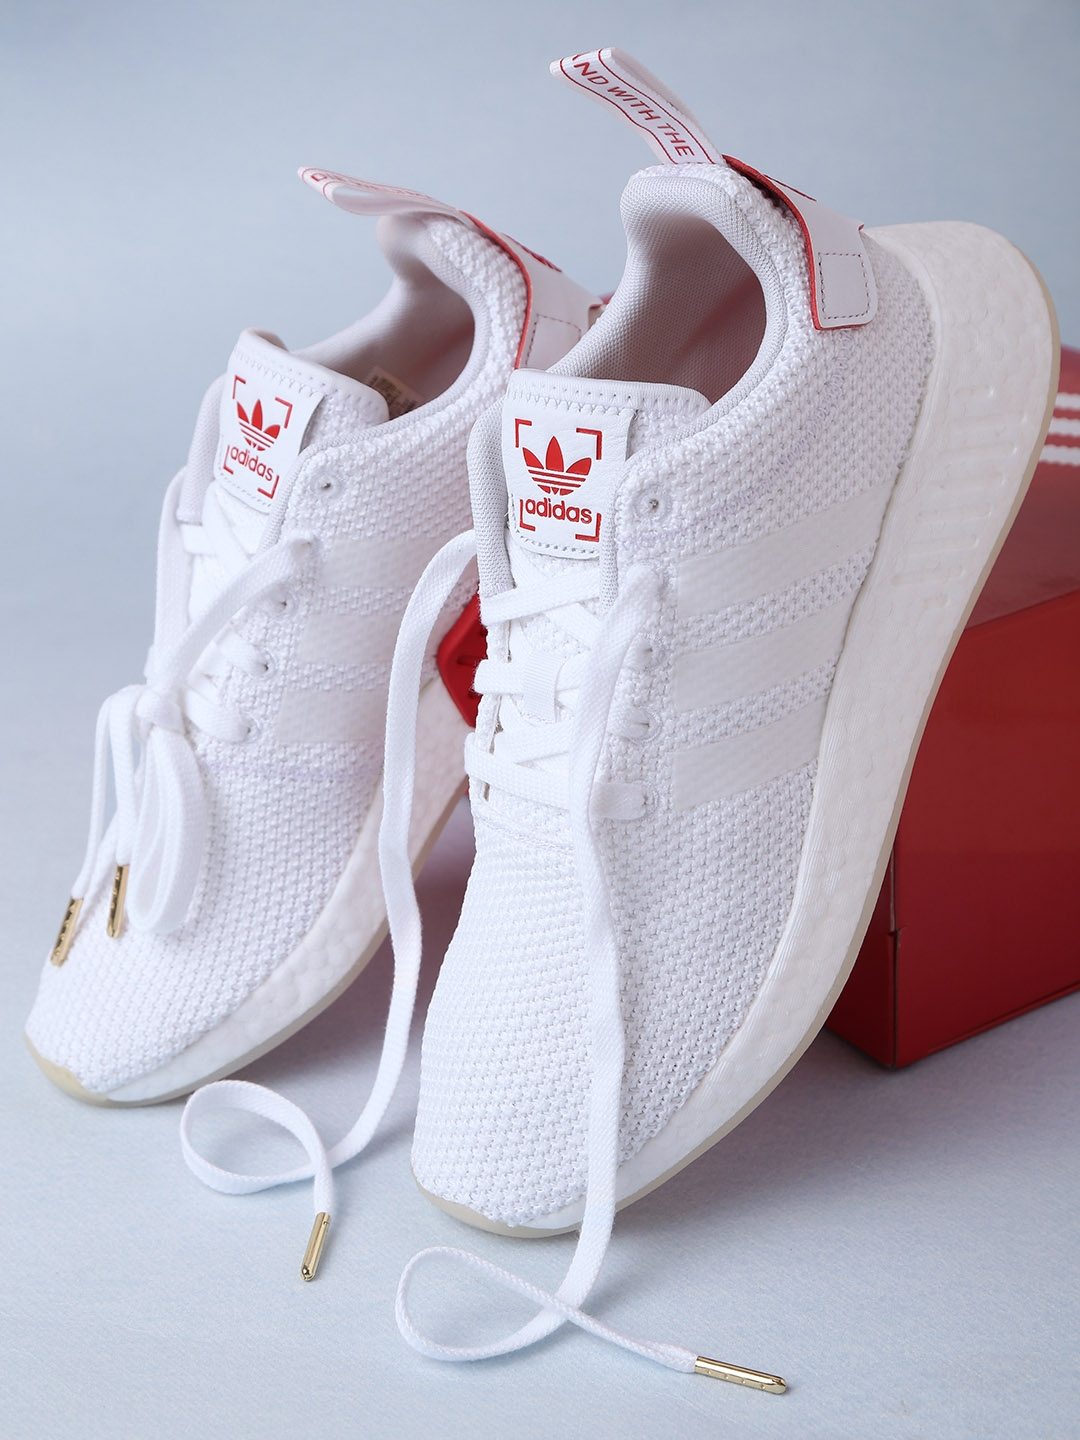 7275e3f6fdd0a Buy ADIDAS Originals Men White NMD R2 CNY Sneakers - Casual Shoes ...